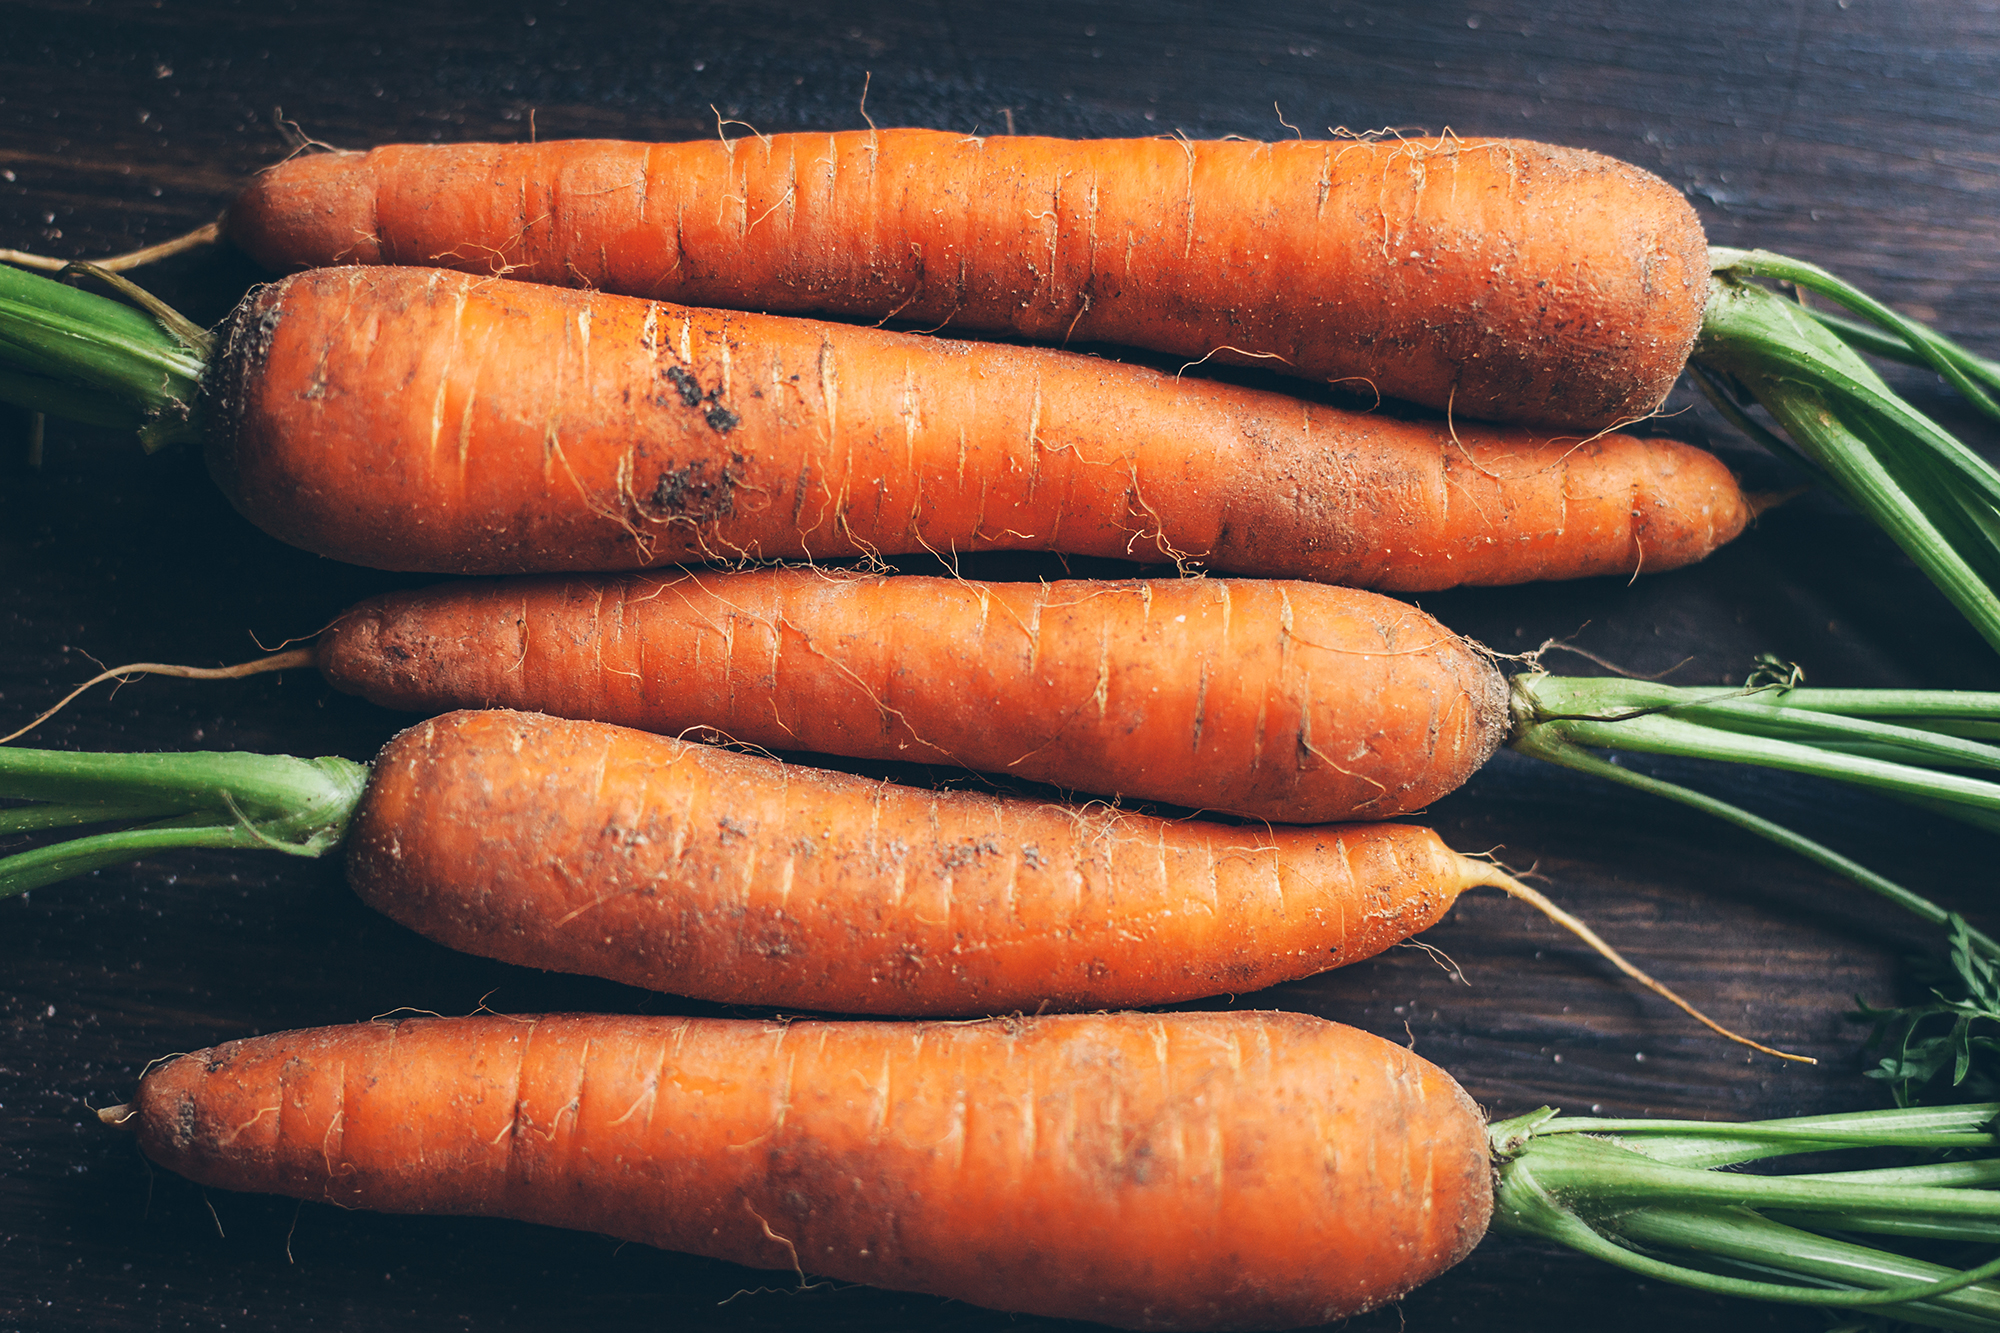 High Angle View Of Carrots On Table